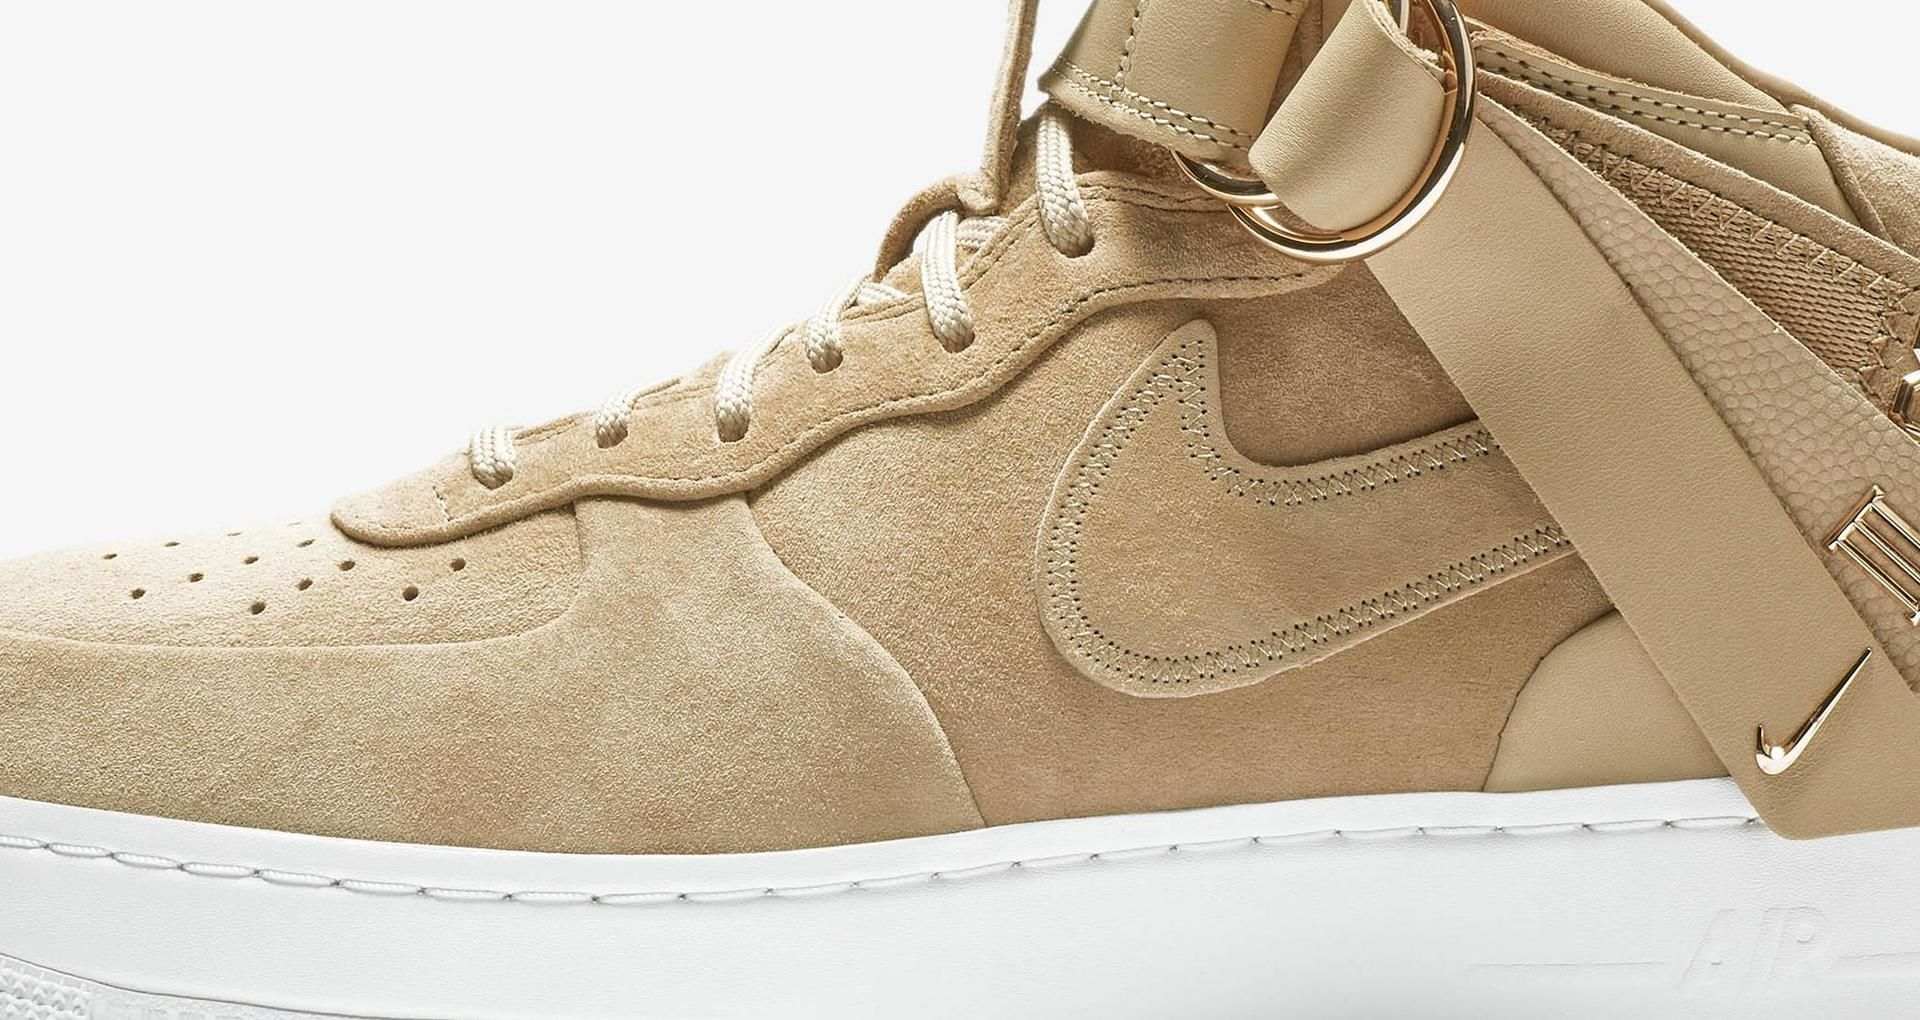 Nike Air Force 1 Mid V.Cruz 'Vachetta Tan & Metallic Gold